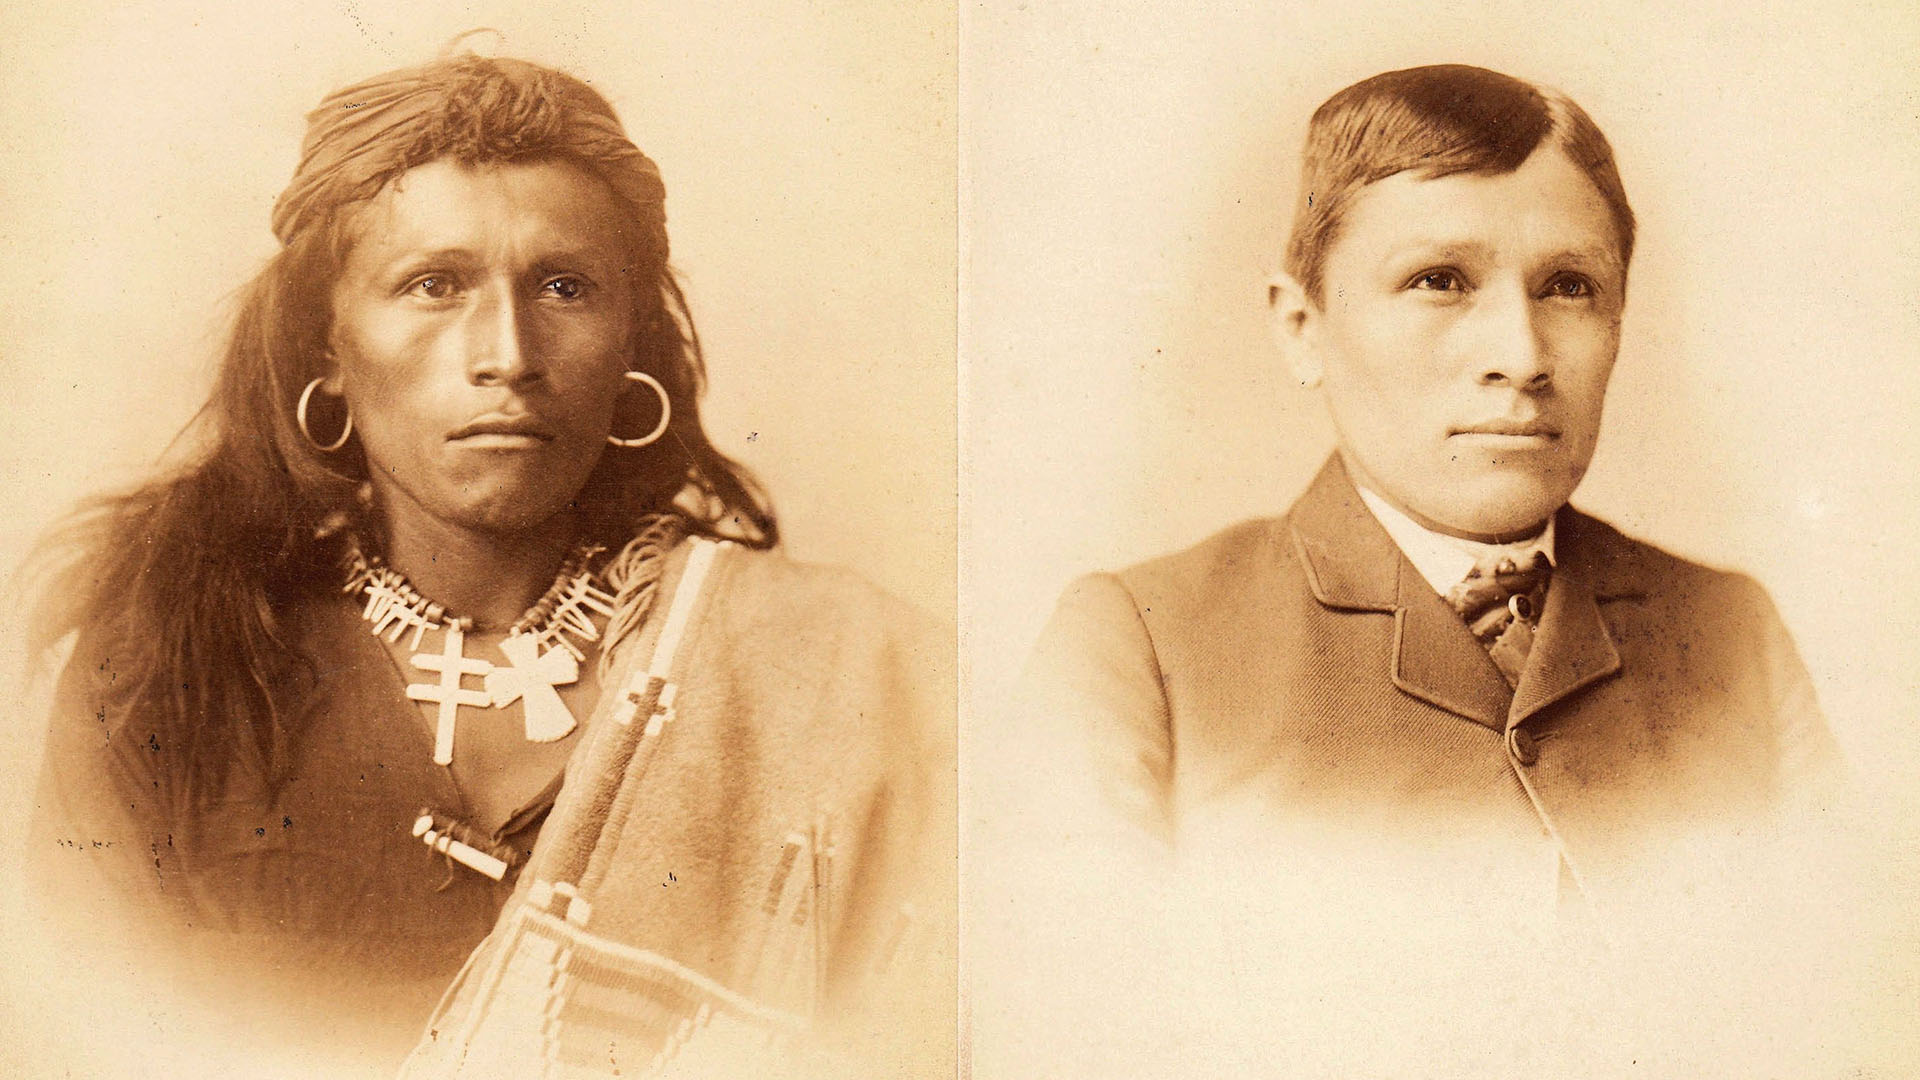 eedd32bb42 Tom Torlino, a member of the Navajo Nation, entered the Carlisle Indian  School,